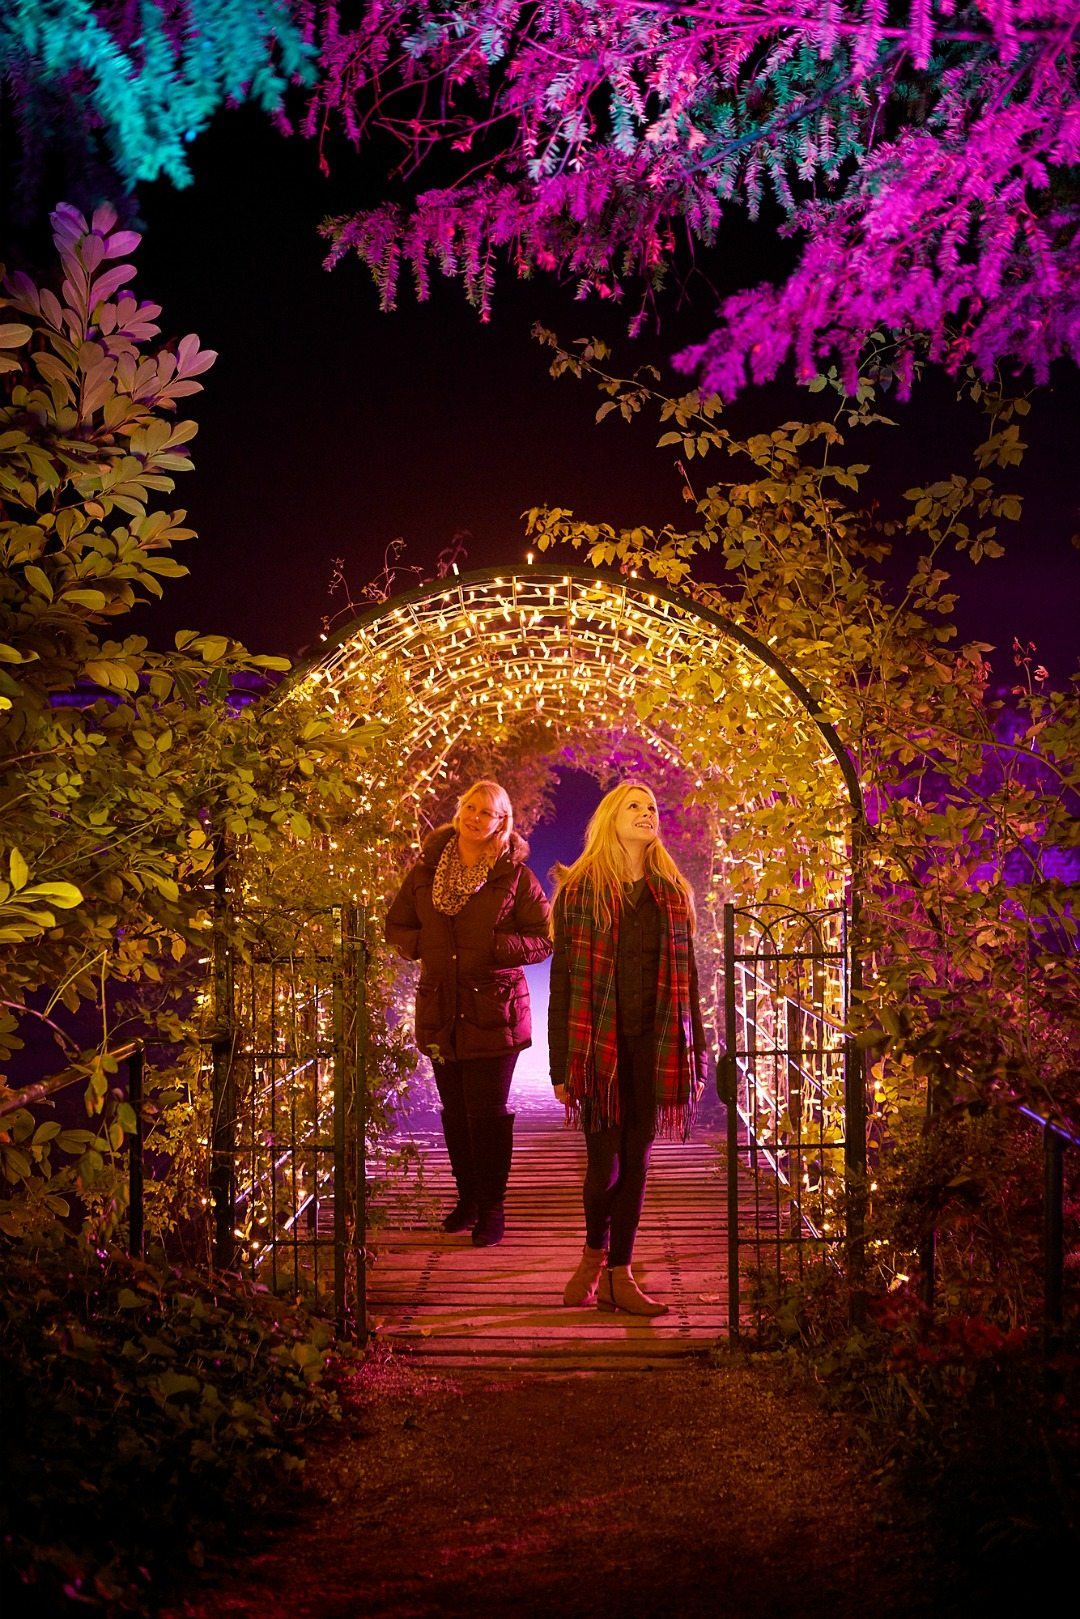 Audley End's wonderful English Heriate property's gardens will be transformed in the Enchanted Events before Christmas - beautiful!